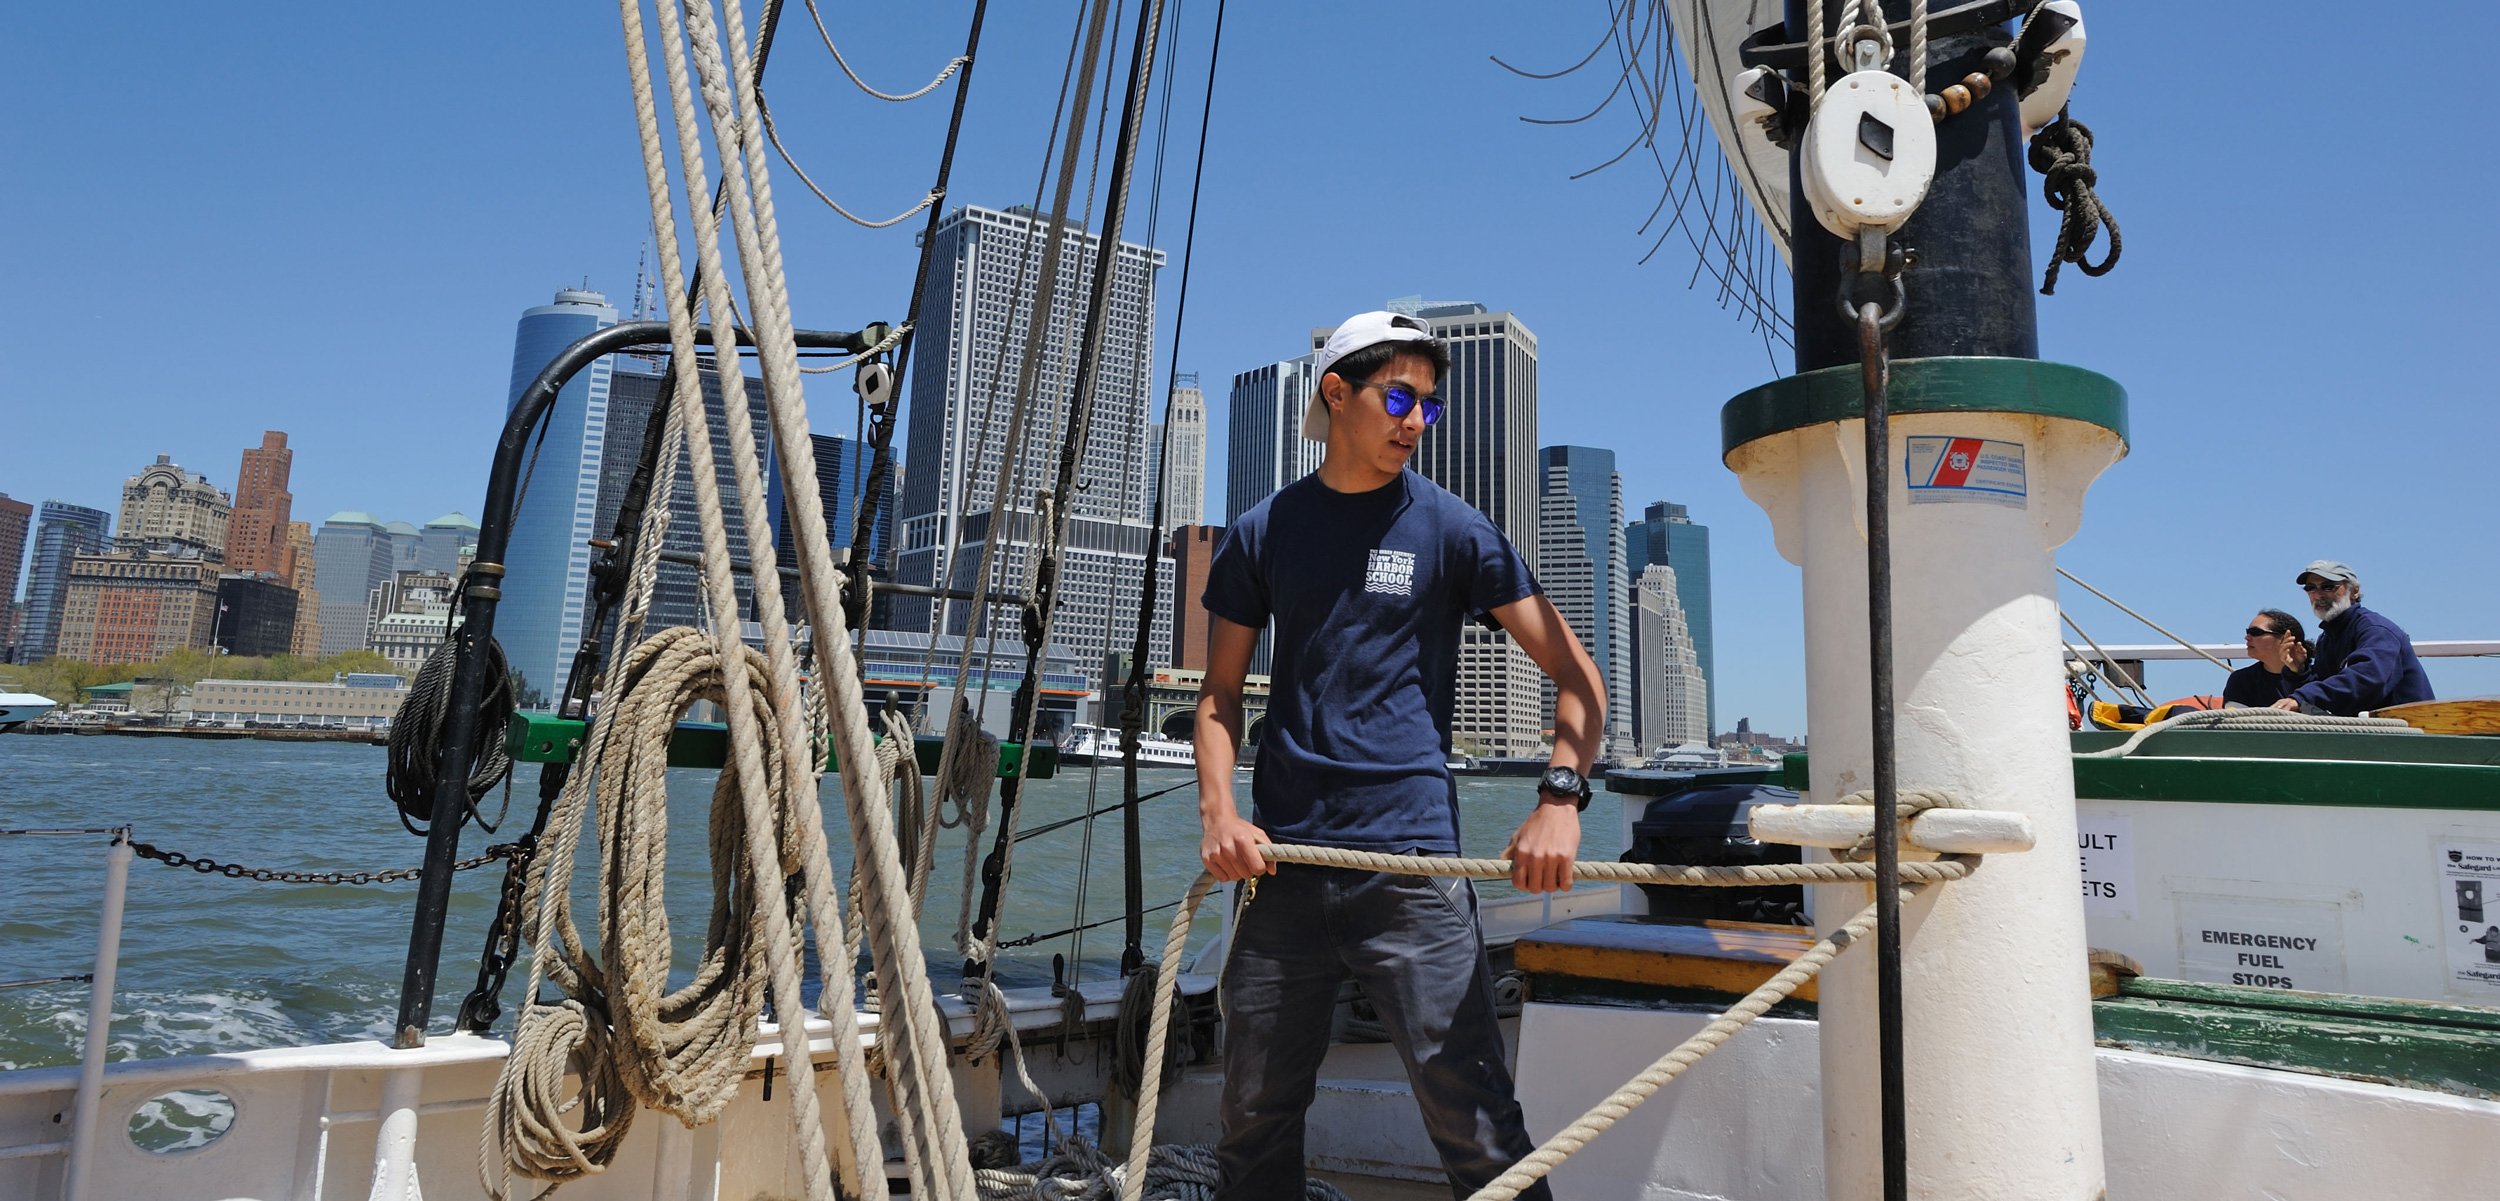 The Urban Assembly New York Harbor School is one of a growing number of high schools around the world teaching students maritime-related skills, such as how to sail. Photo by Terese Loeb Kreuzer/Alamy Stock Photo